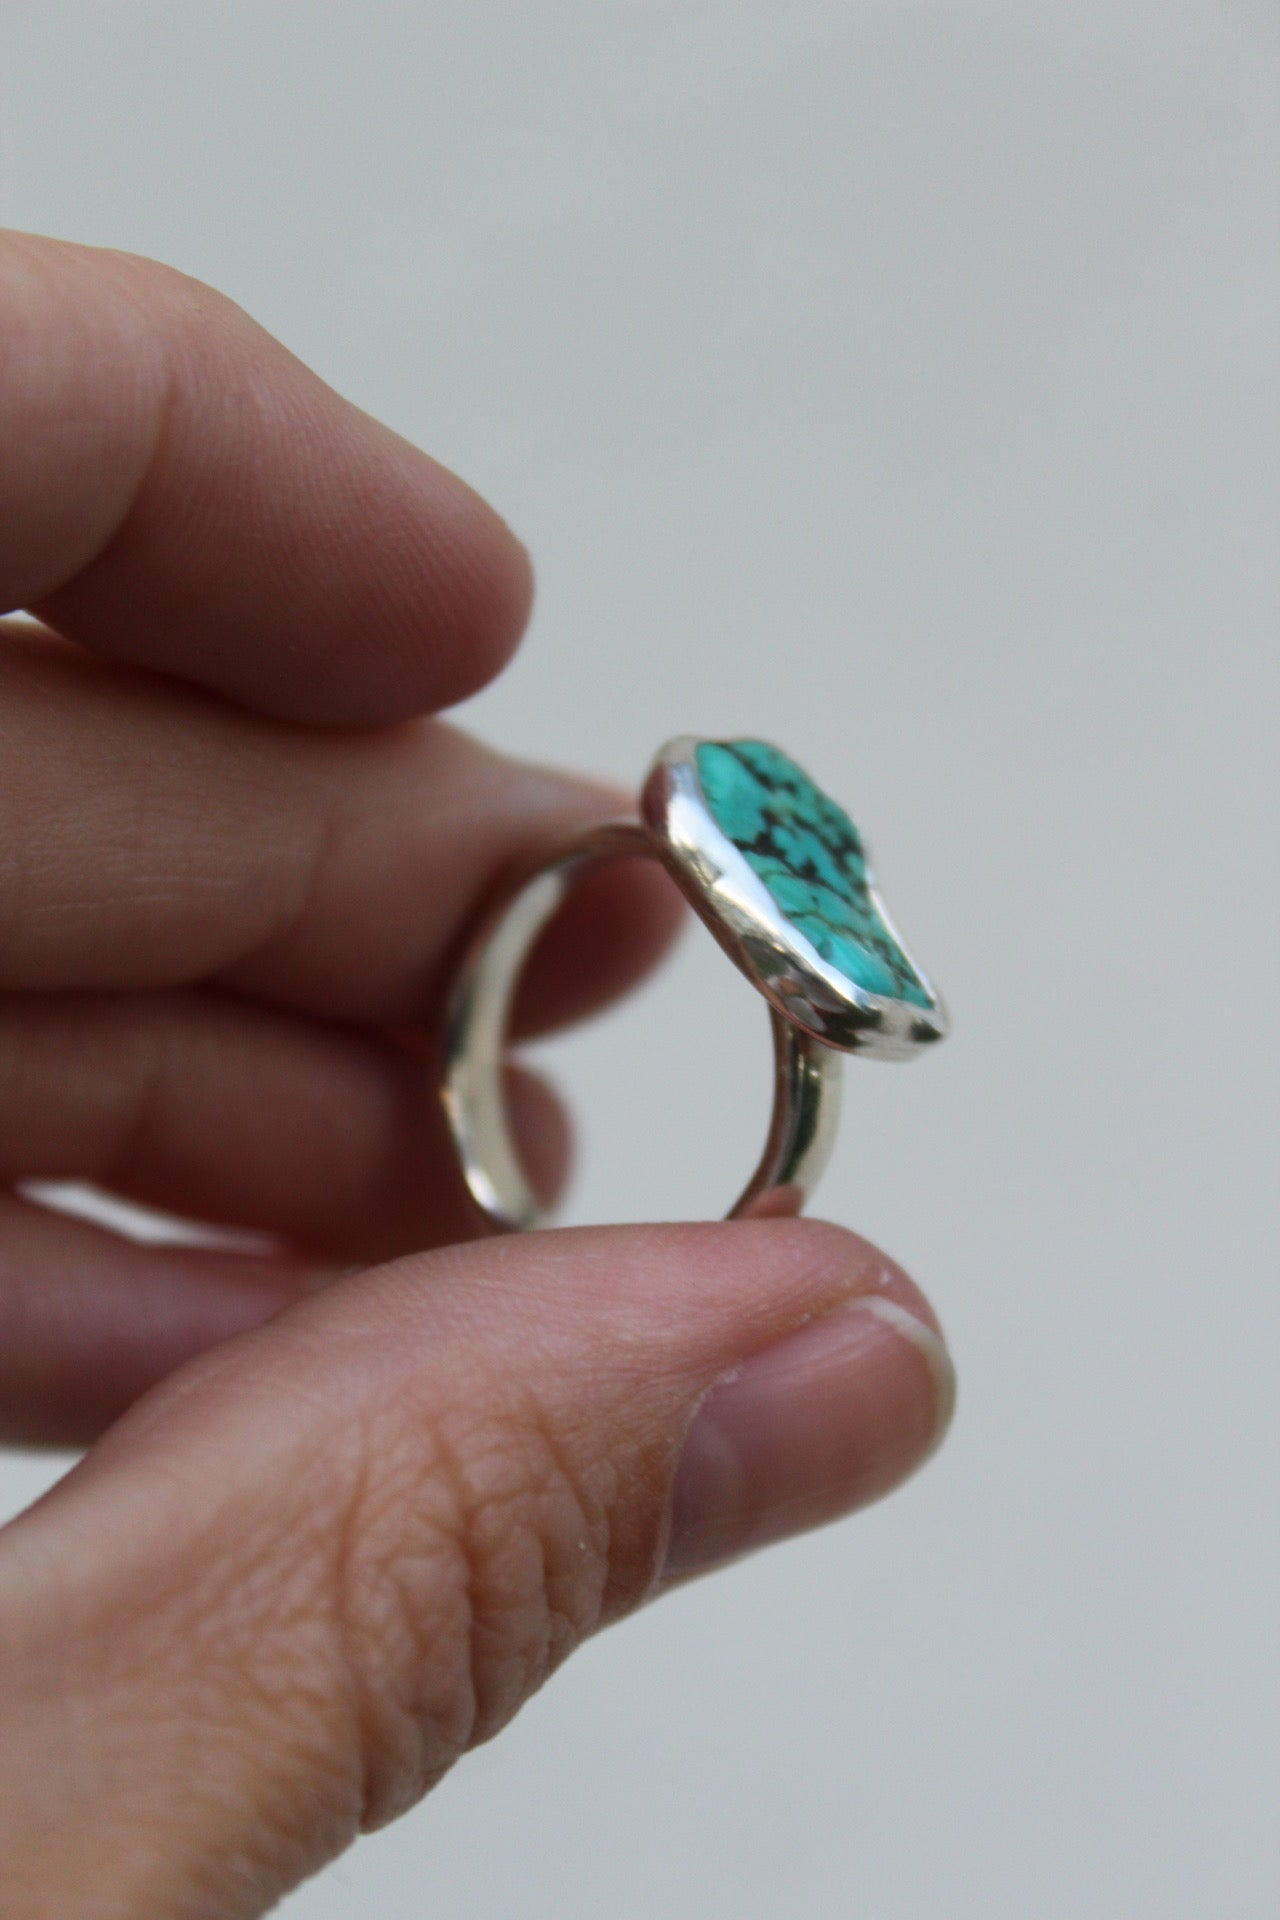 Horizontal Ring #72- Size 6